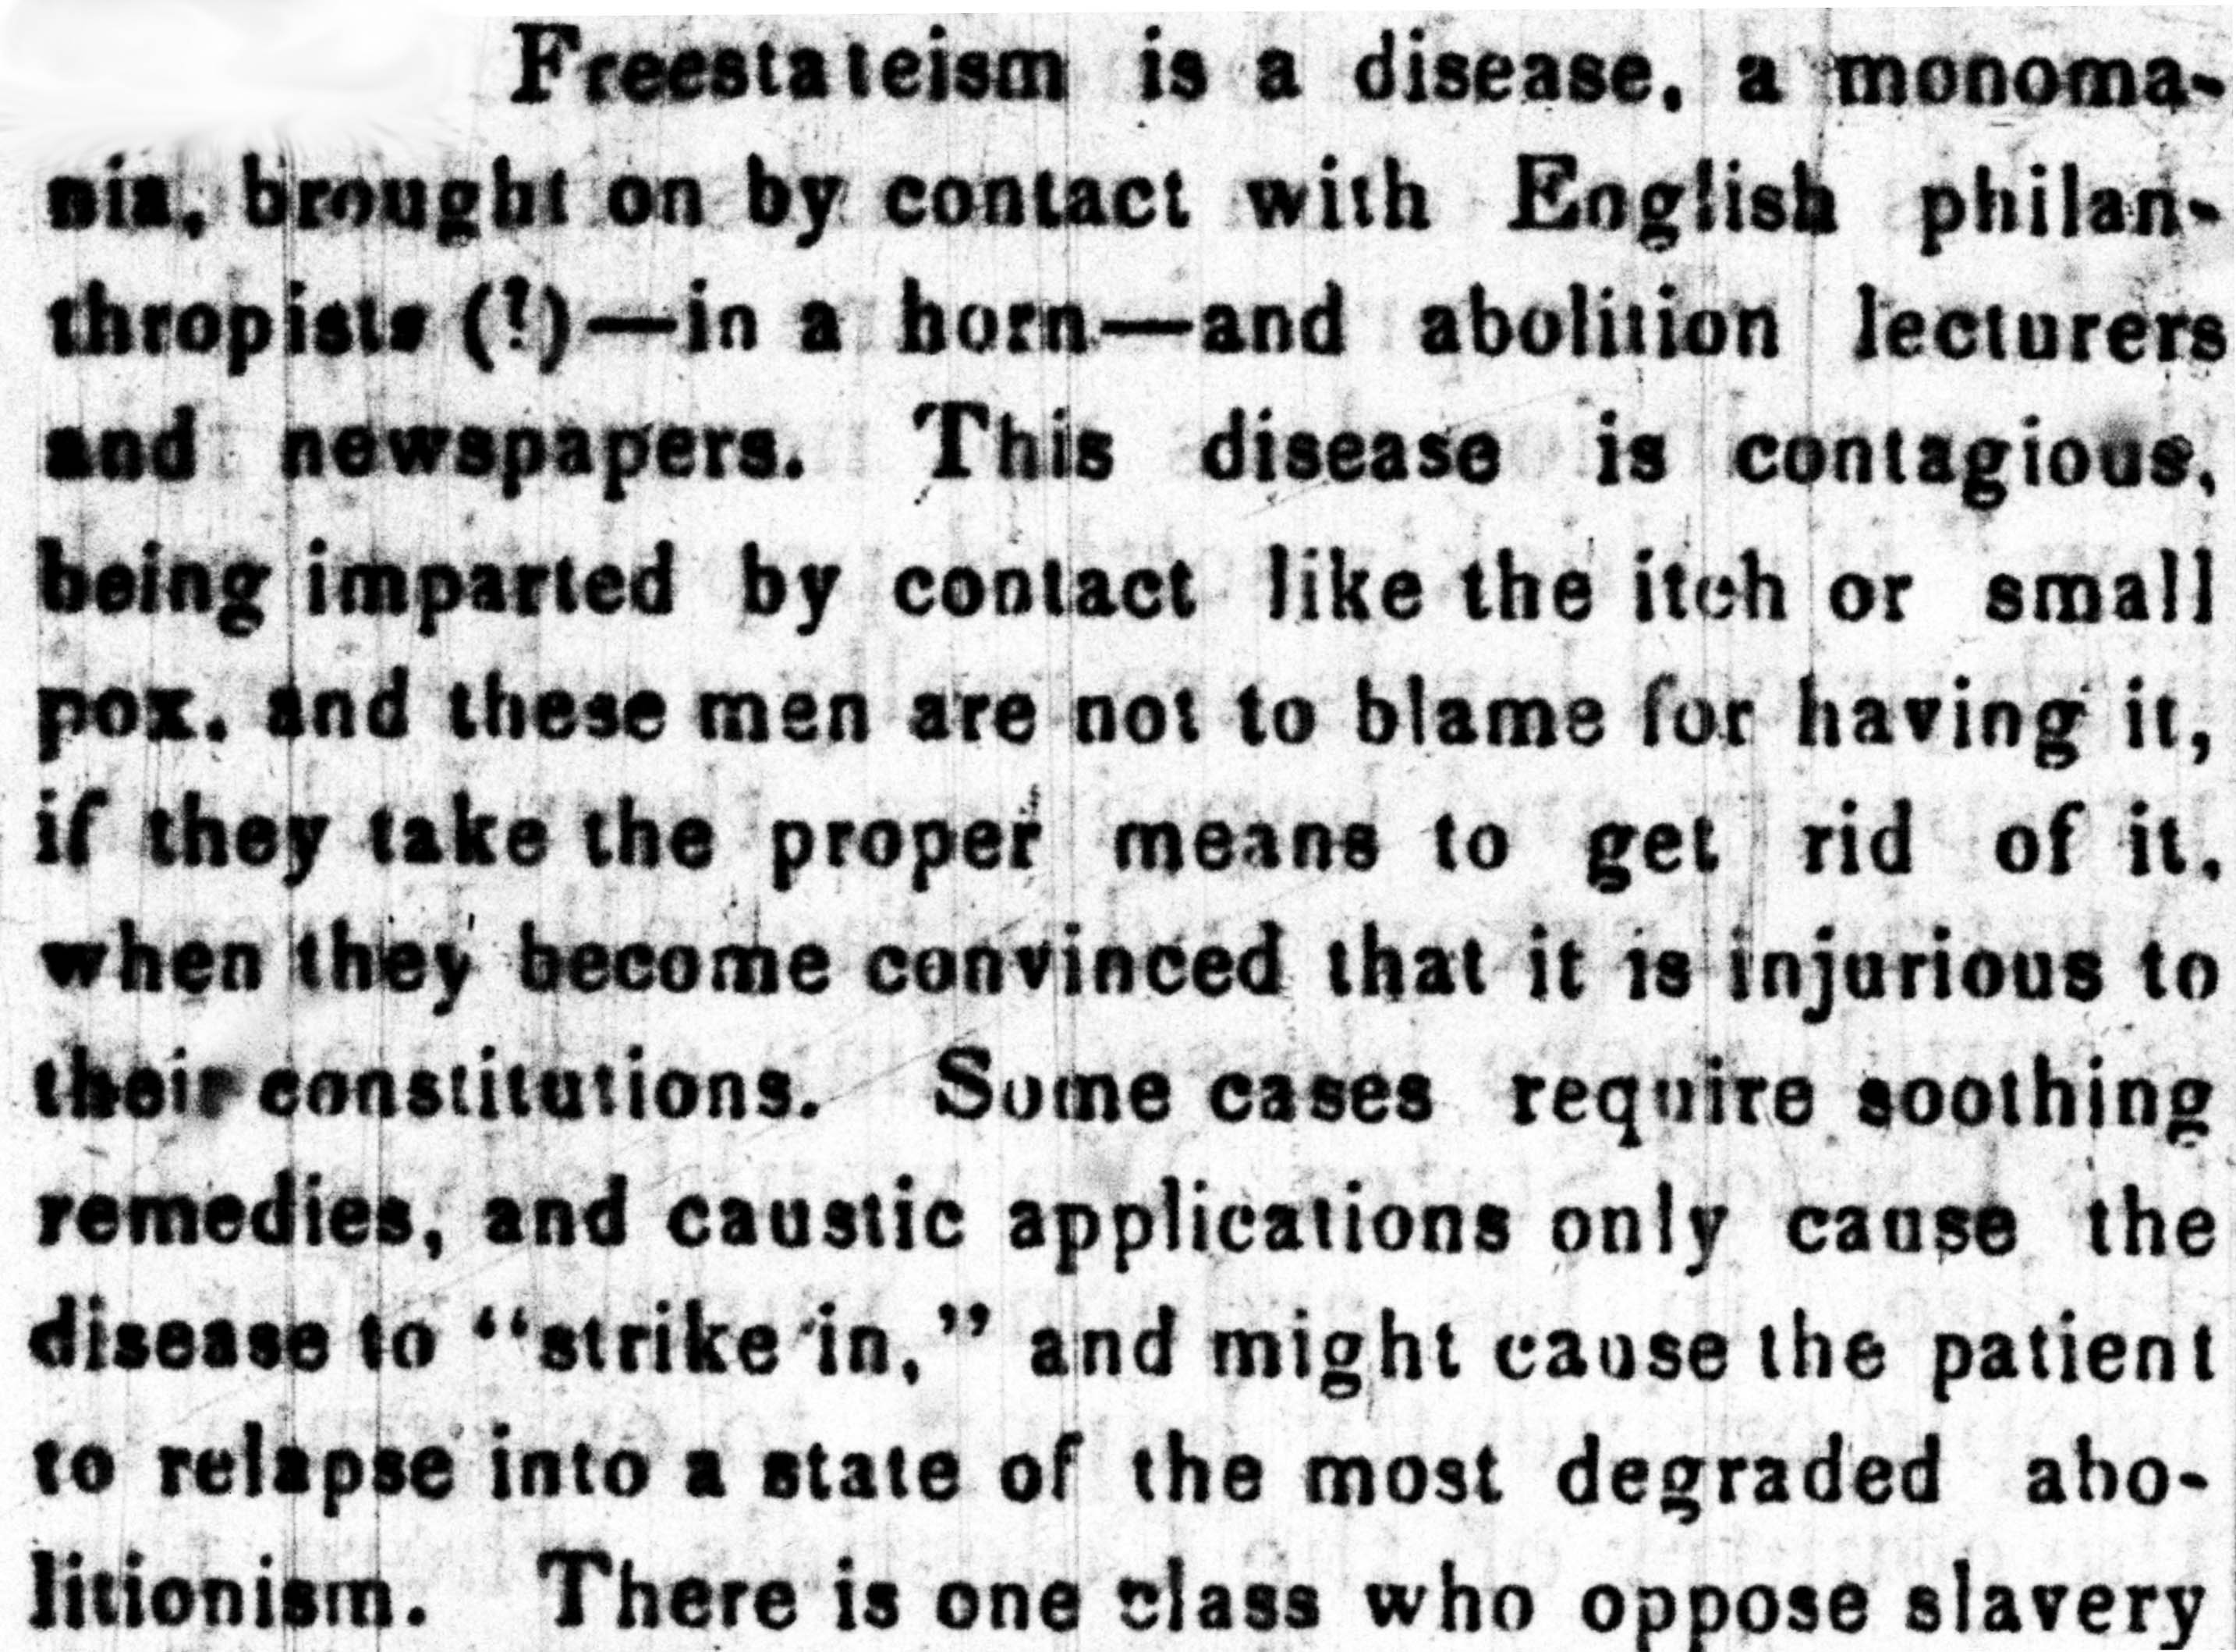 An excerpt from an article that describes abolitionism as a disease.